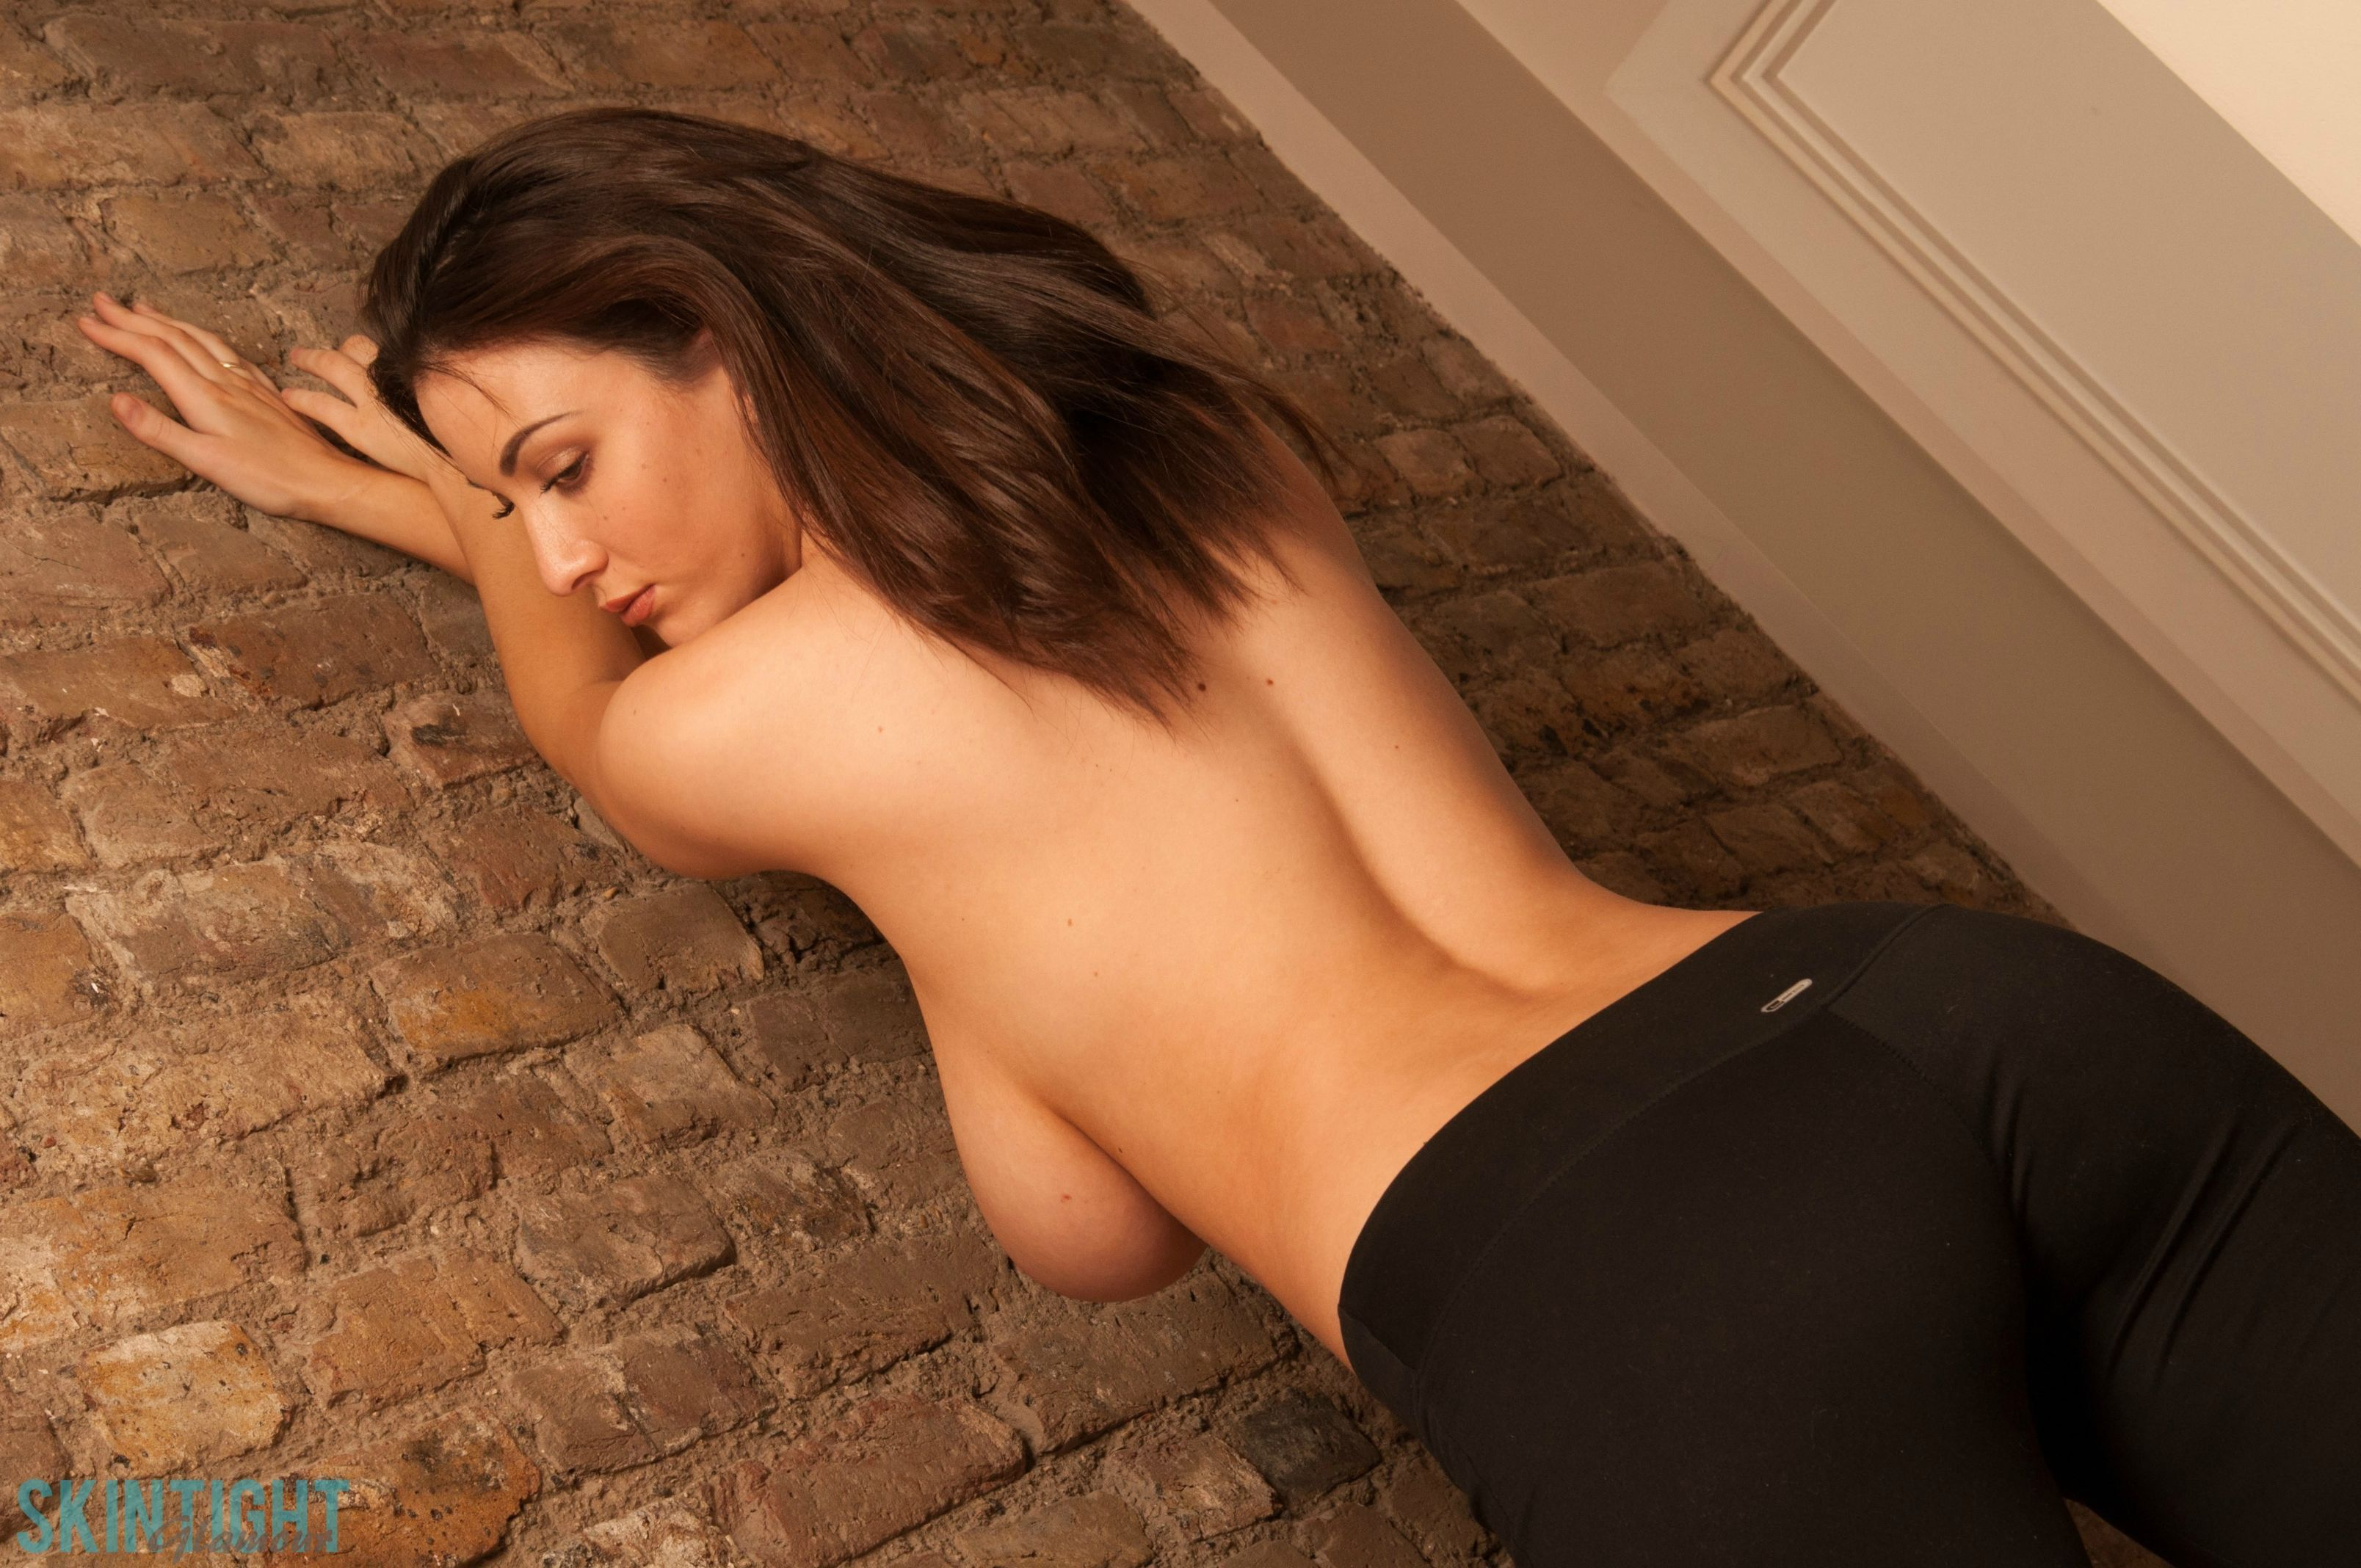 Joey Fisher seen from behind